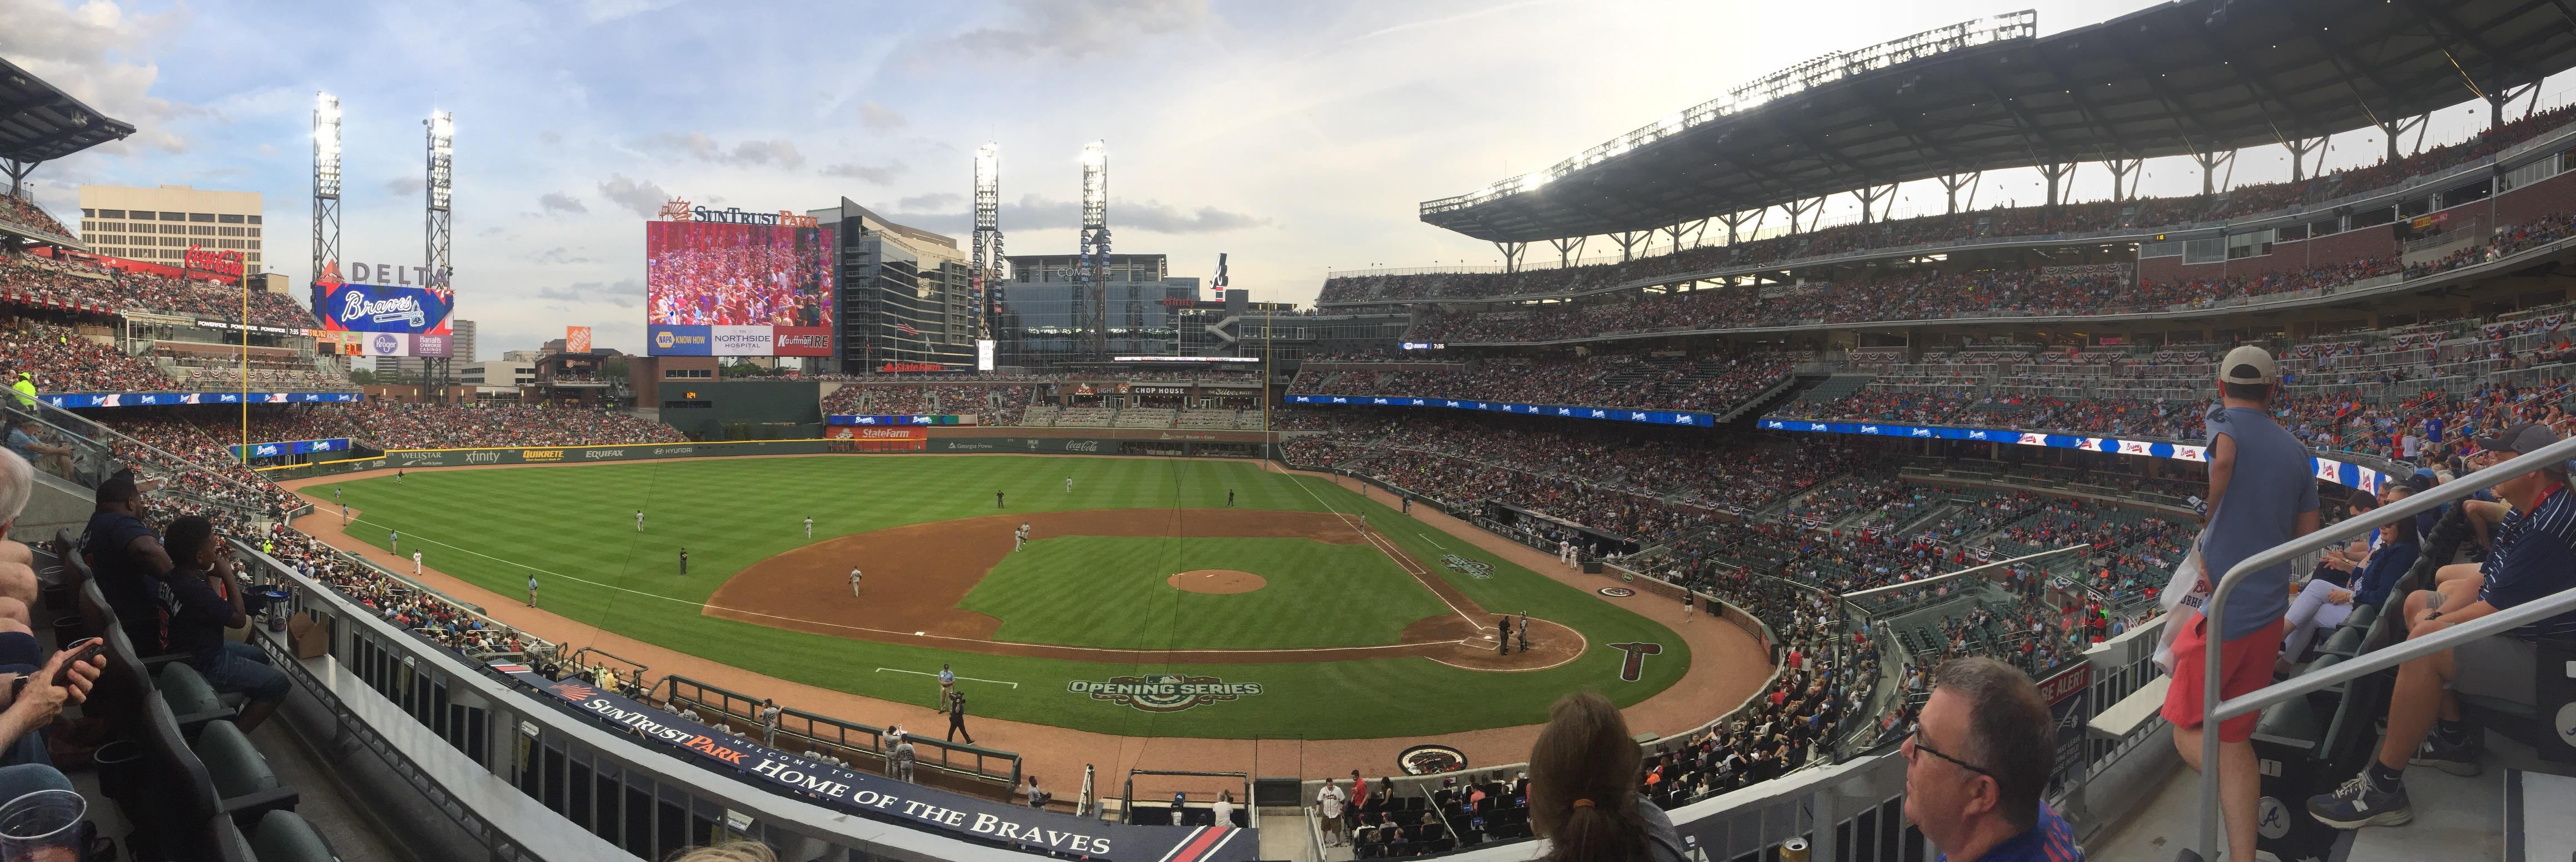 Truist Park Section 231 Row 2 Seat 2